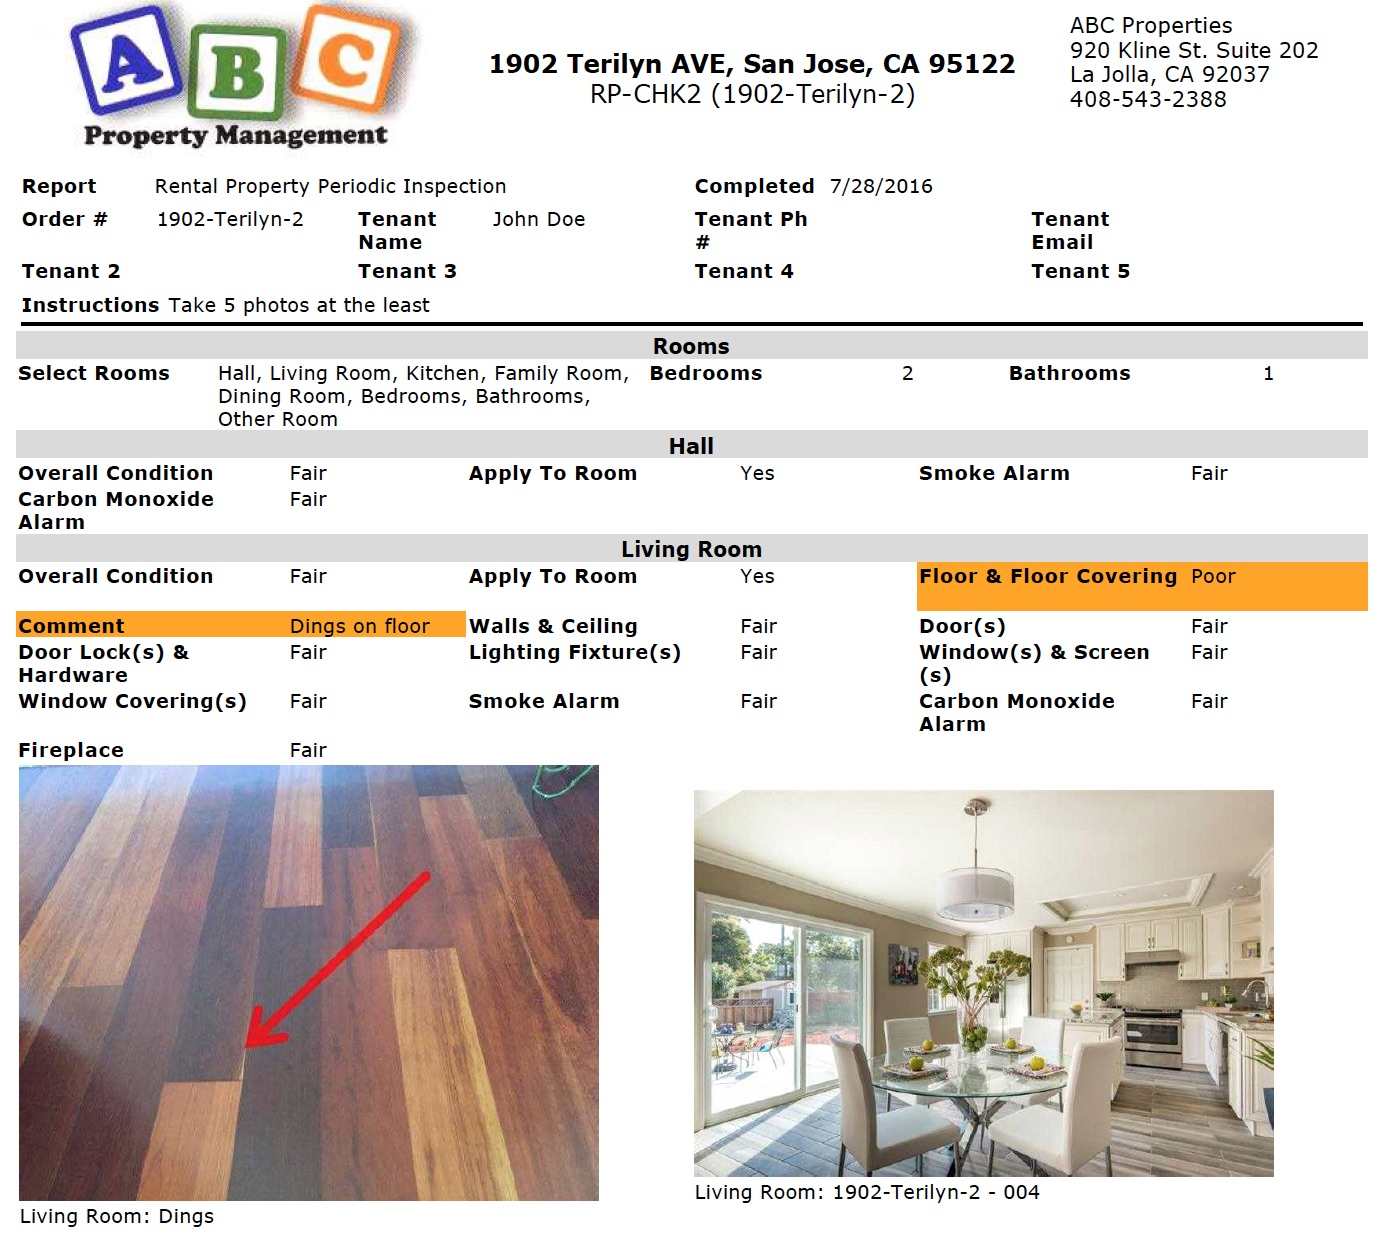 Standard home inspection report forms image collections for Rental property condition report template